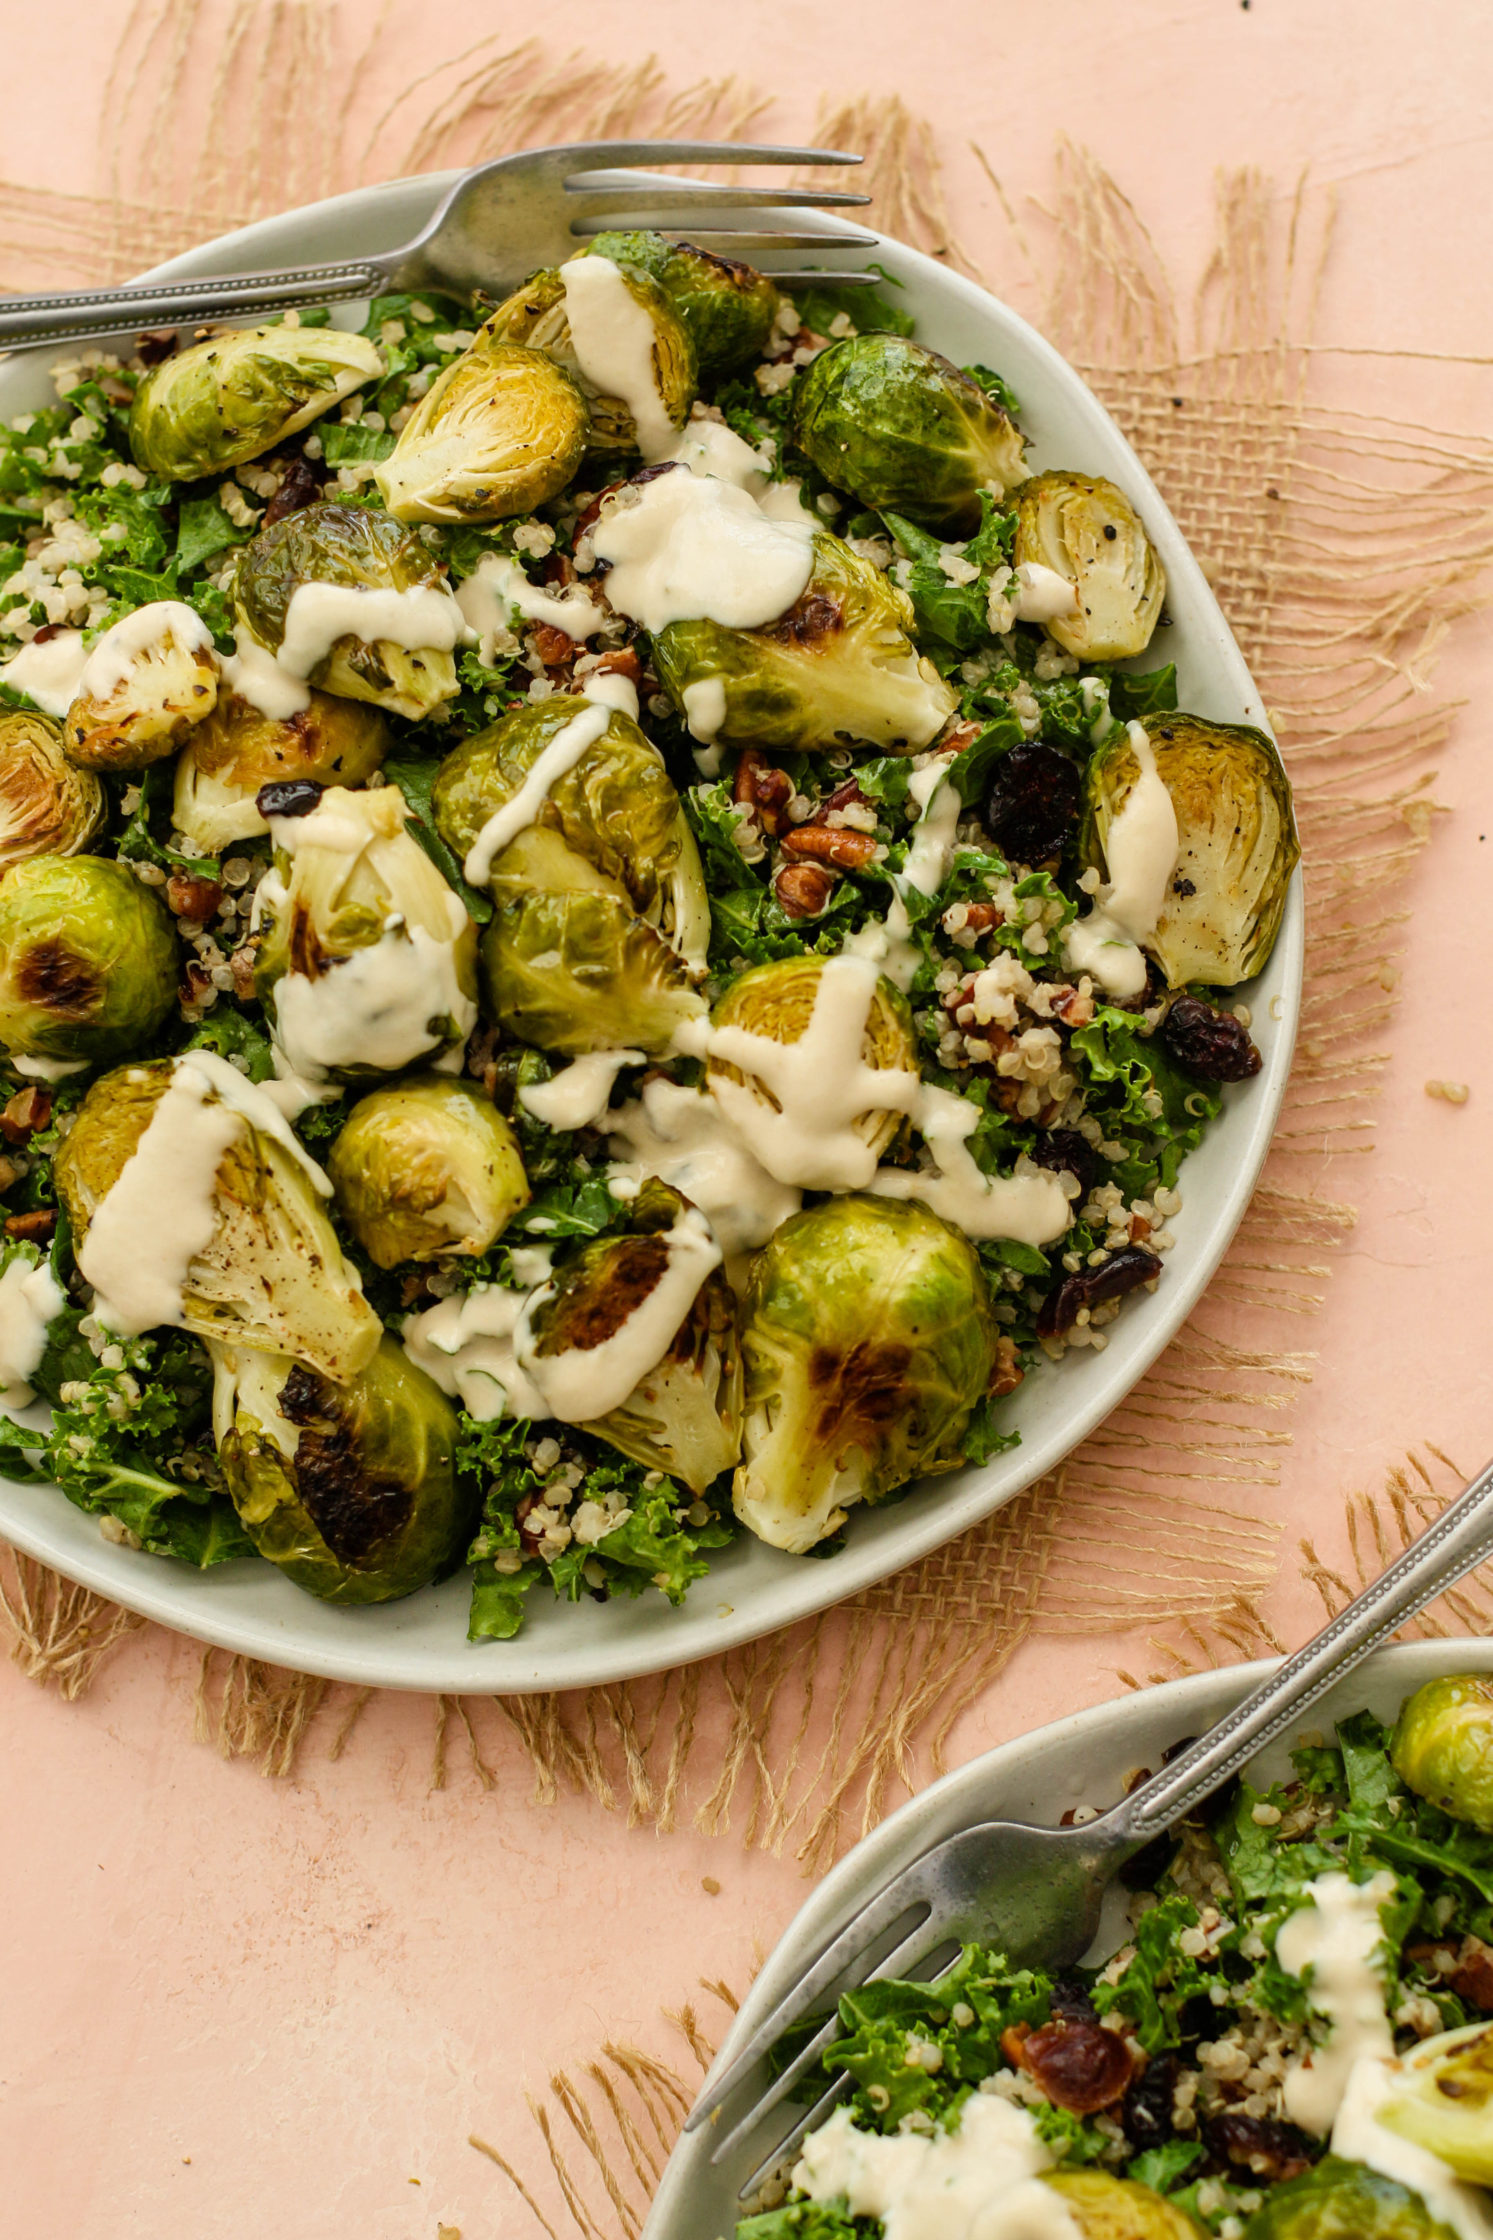 Cranberry Quinoa Brussel Sprout Salad with Apple Cider Tahini